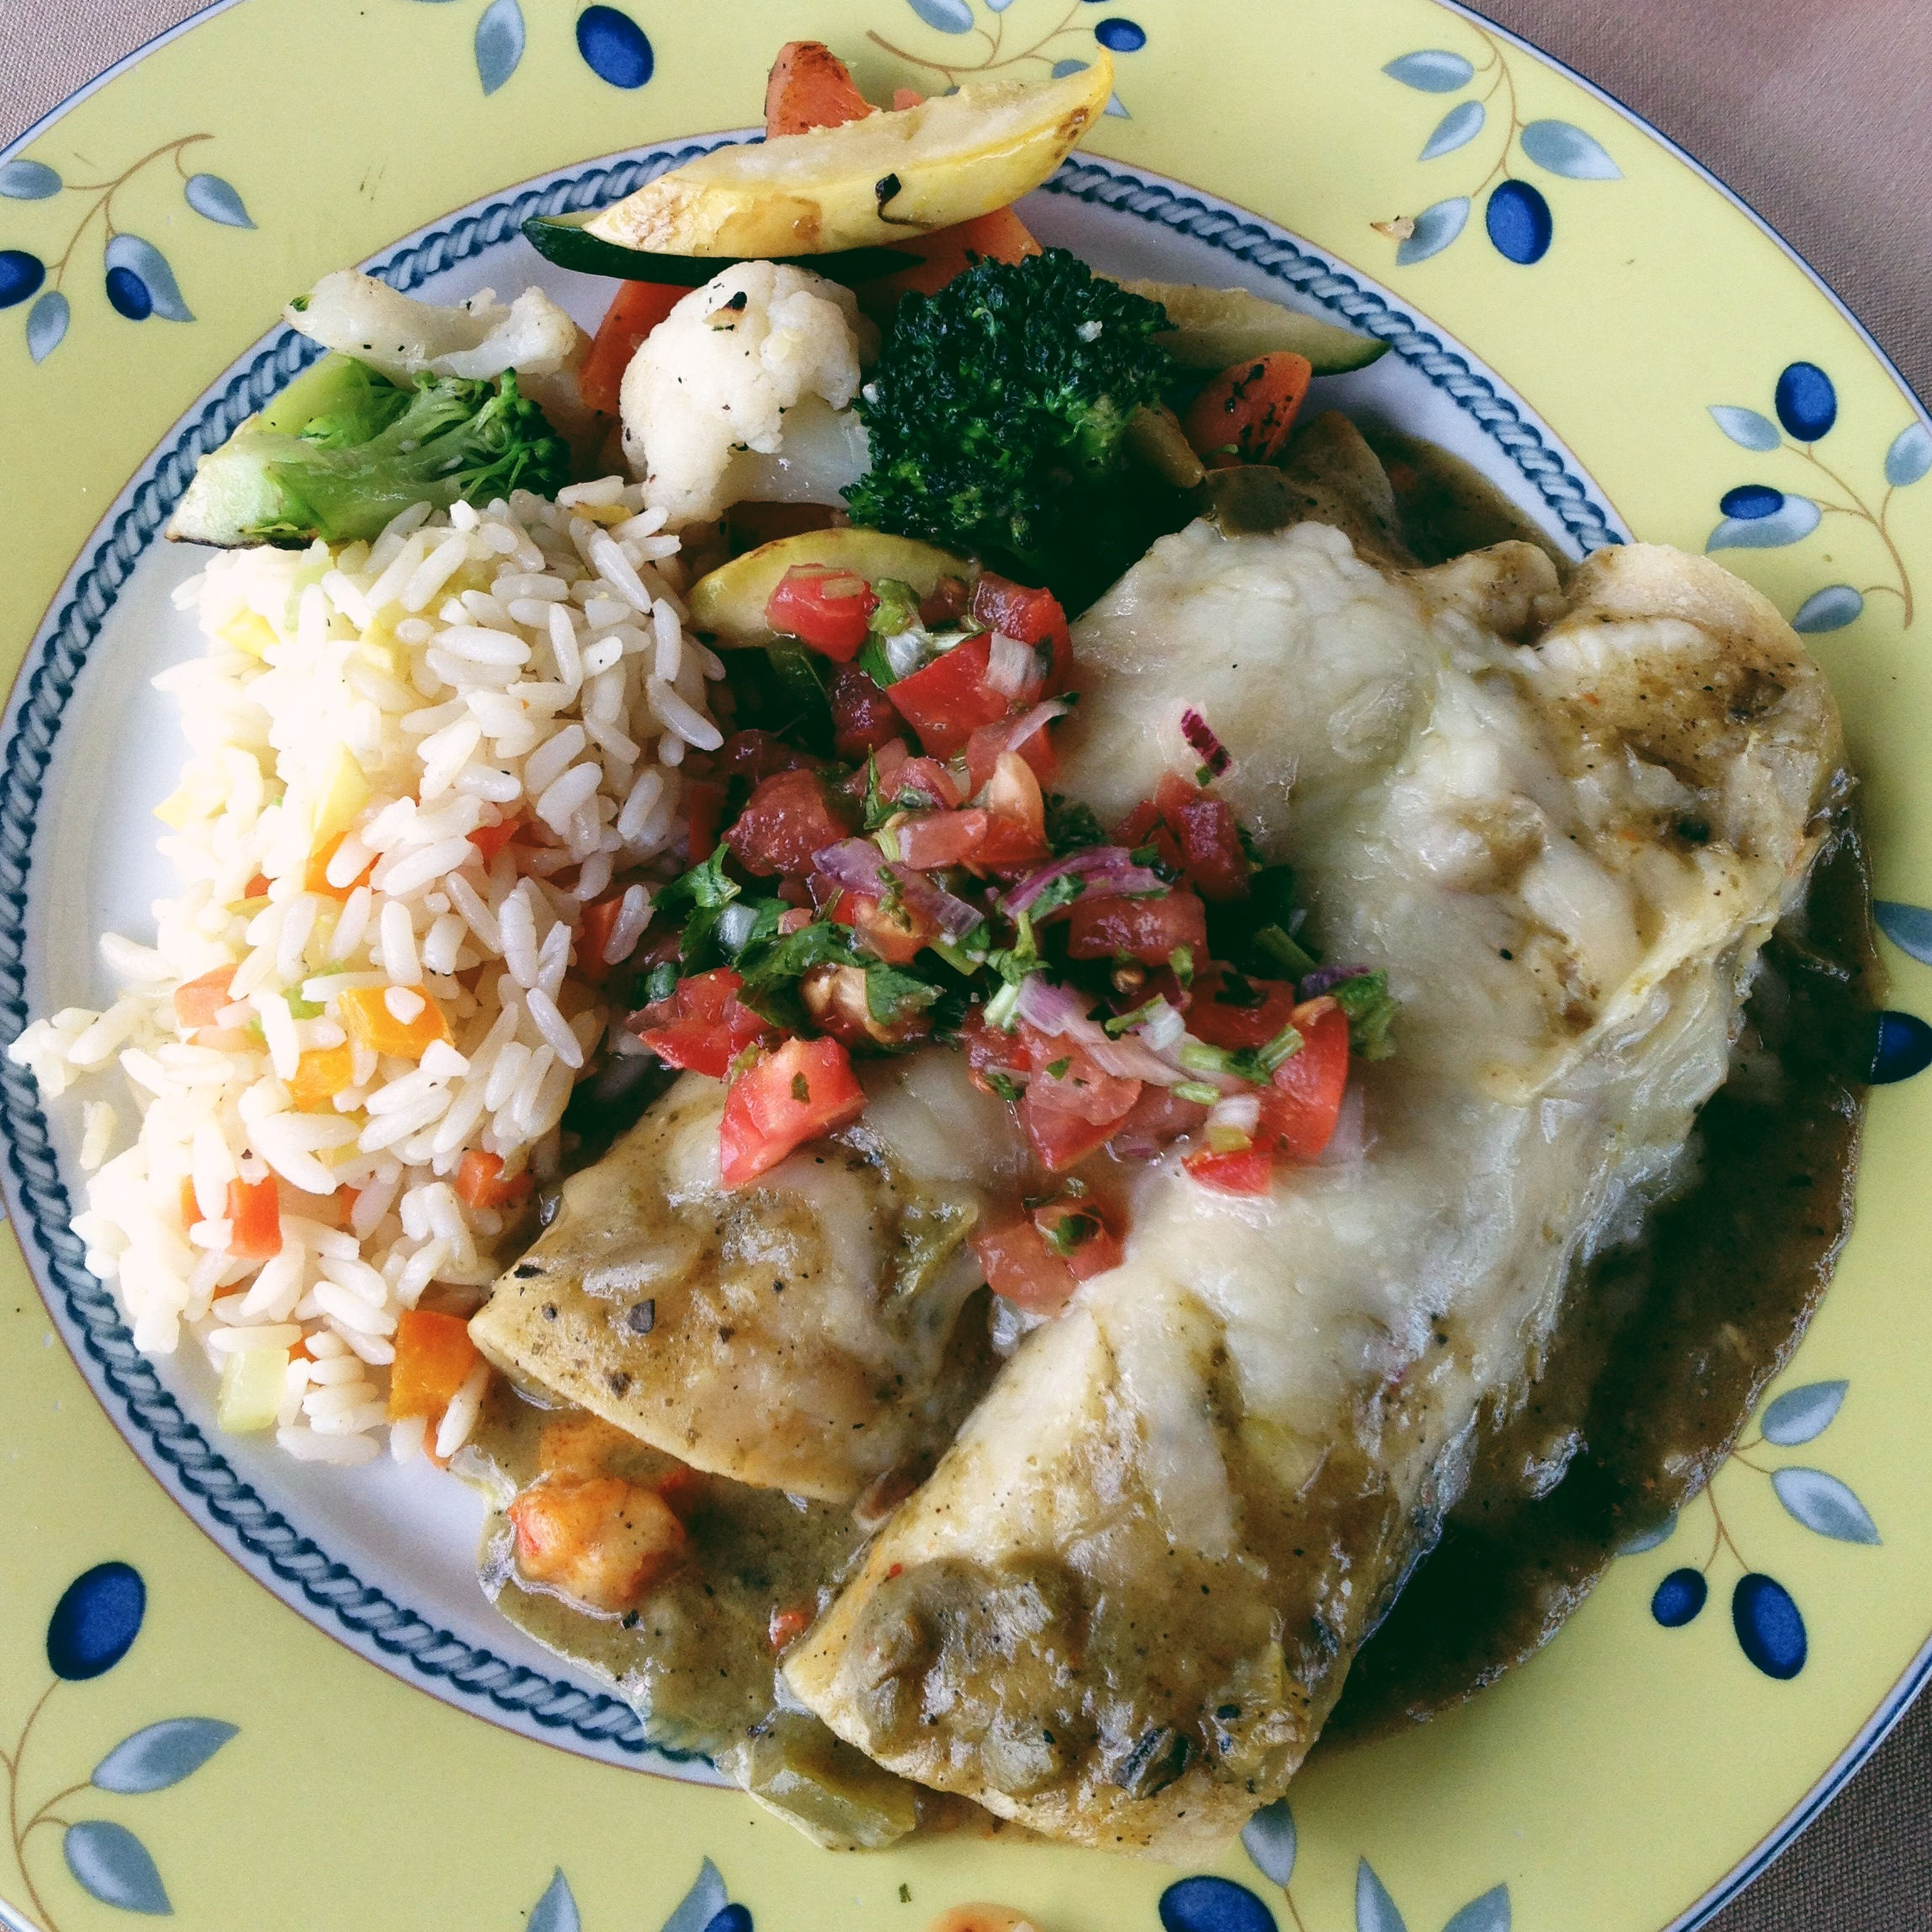 Shrimp/Crawfish Enchiladas